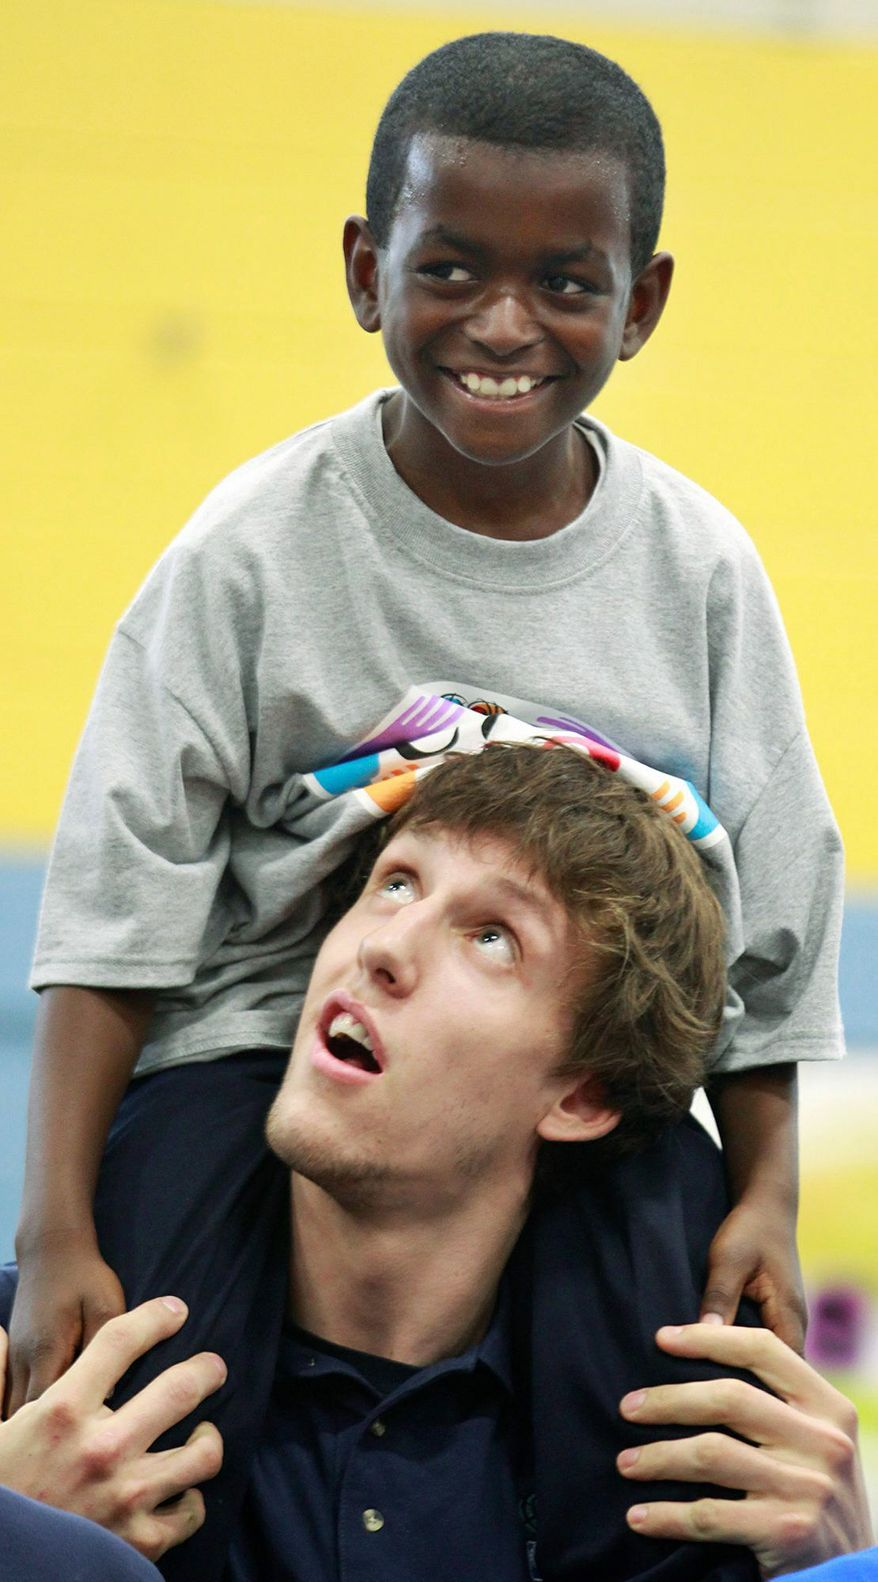 Keshawn Porter, above, 11, a member of the Boys & Girls Club in Newark, N.J., is seen on the shoulders of Jan Vesely, an NBA Draft prospect from the Czech Republic, at the end of an NBA Fit Clinic, Wednesday, June 22, 2011 in Newark, N.J. (AP Photo/Julio Cortez)